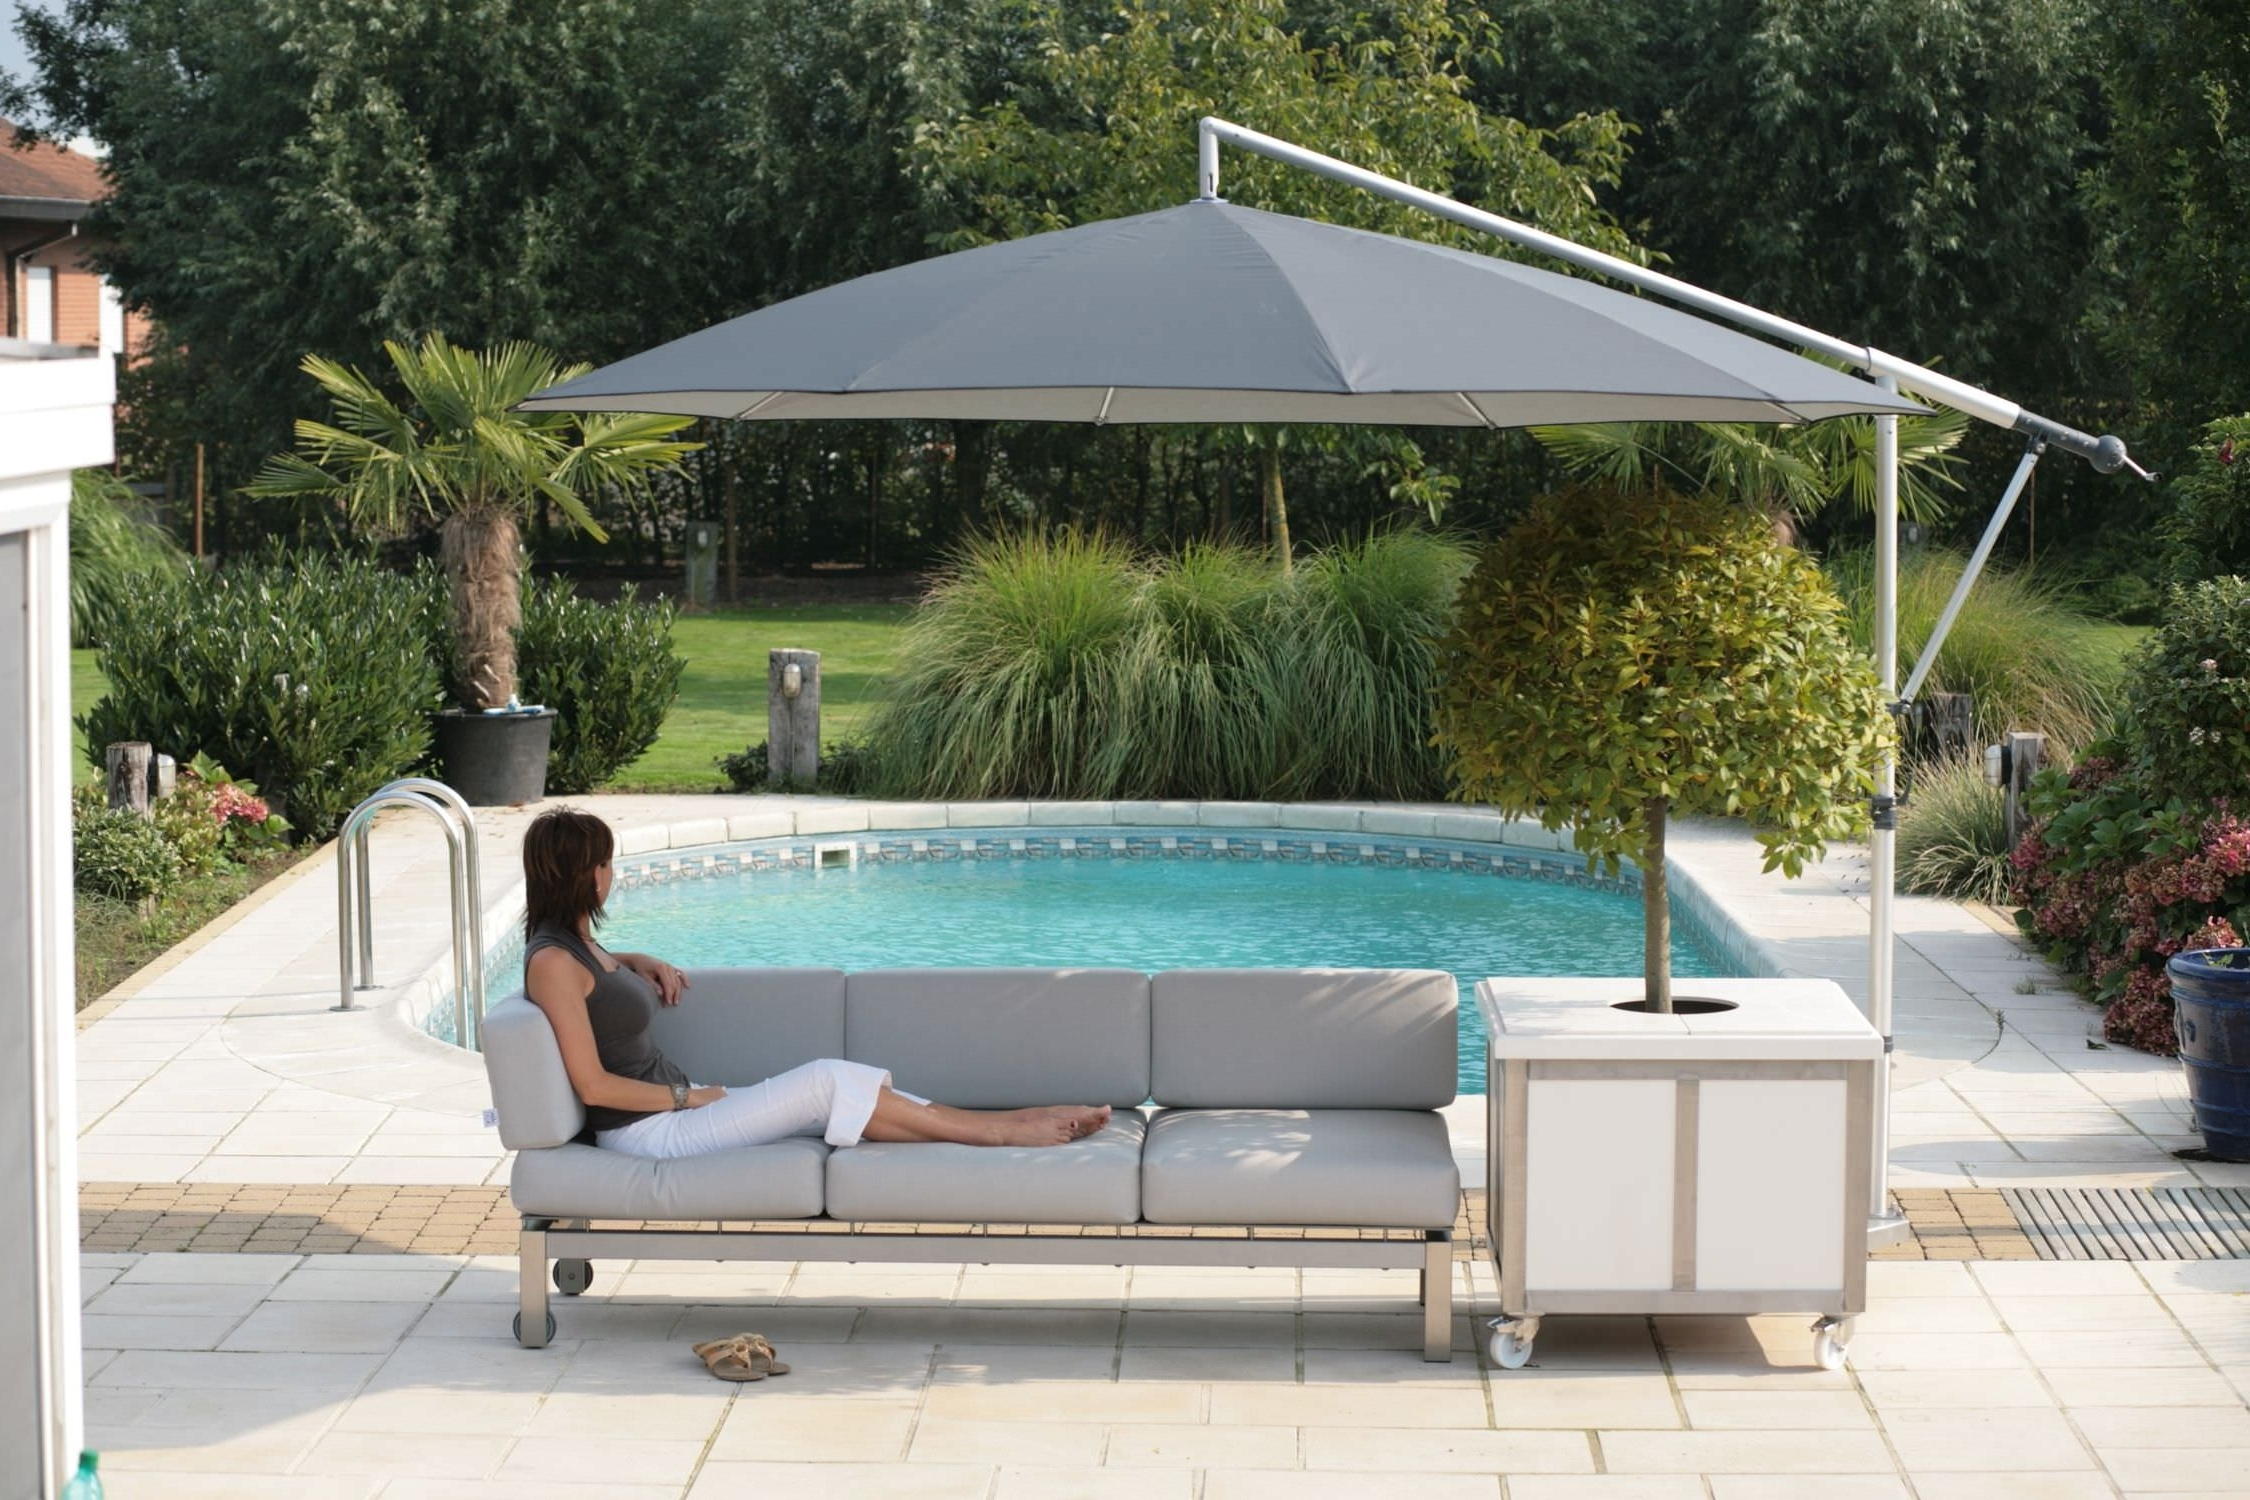 2018 Offset Patio Umbrellas With Base Within Offset Patio Umbrella Base Weights : Offset Patio Umbrella And A (View 1 of 20)